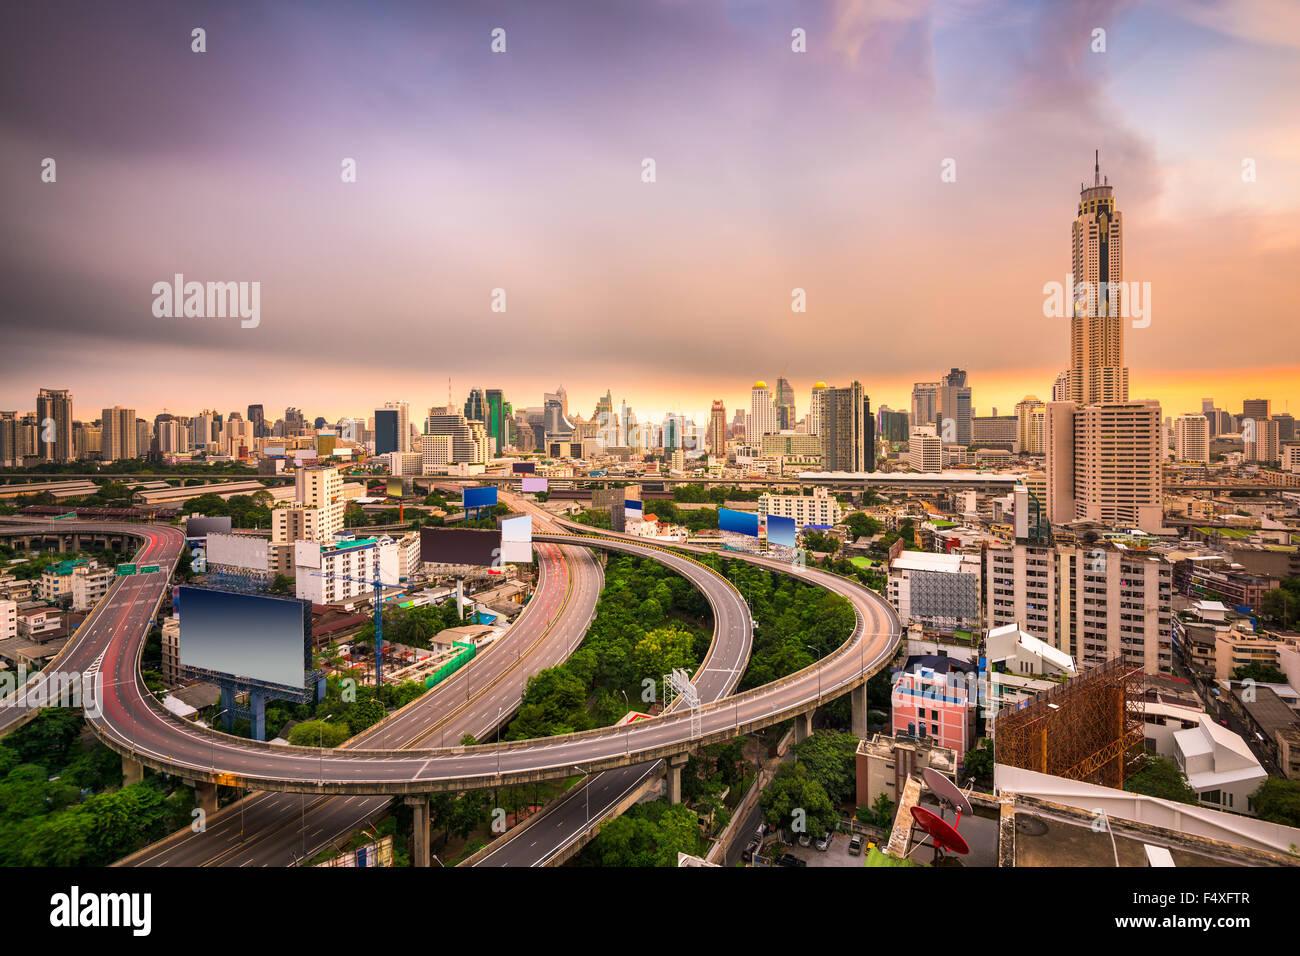 Bangkok, Thailand cityscape with highways. - Stock Image